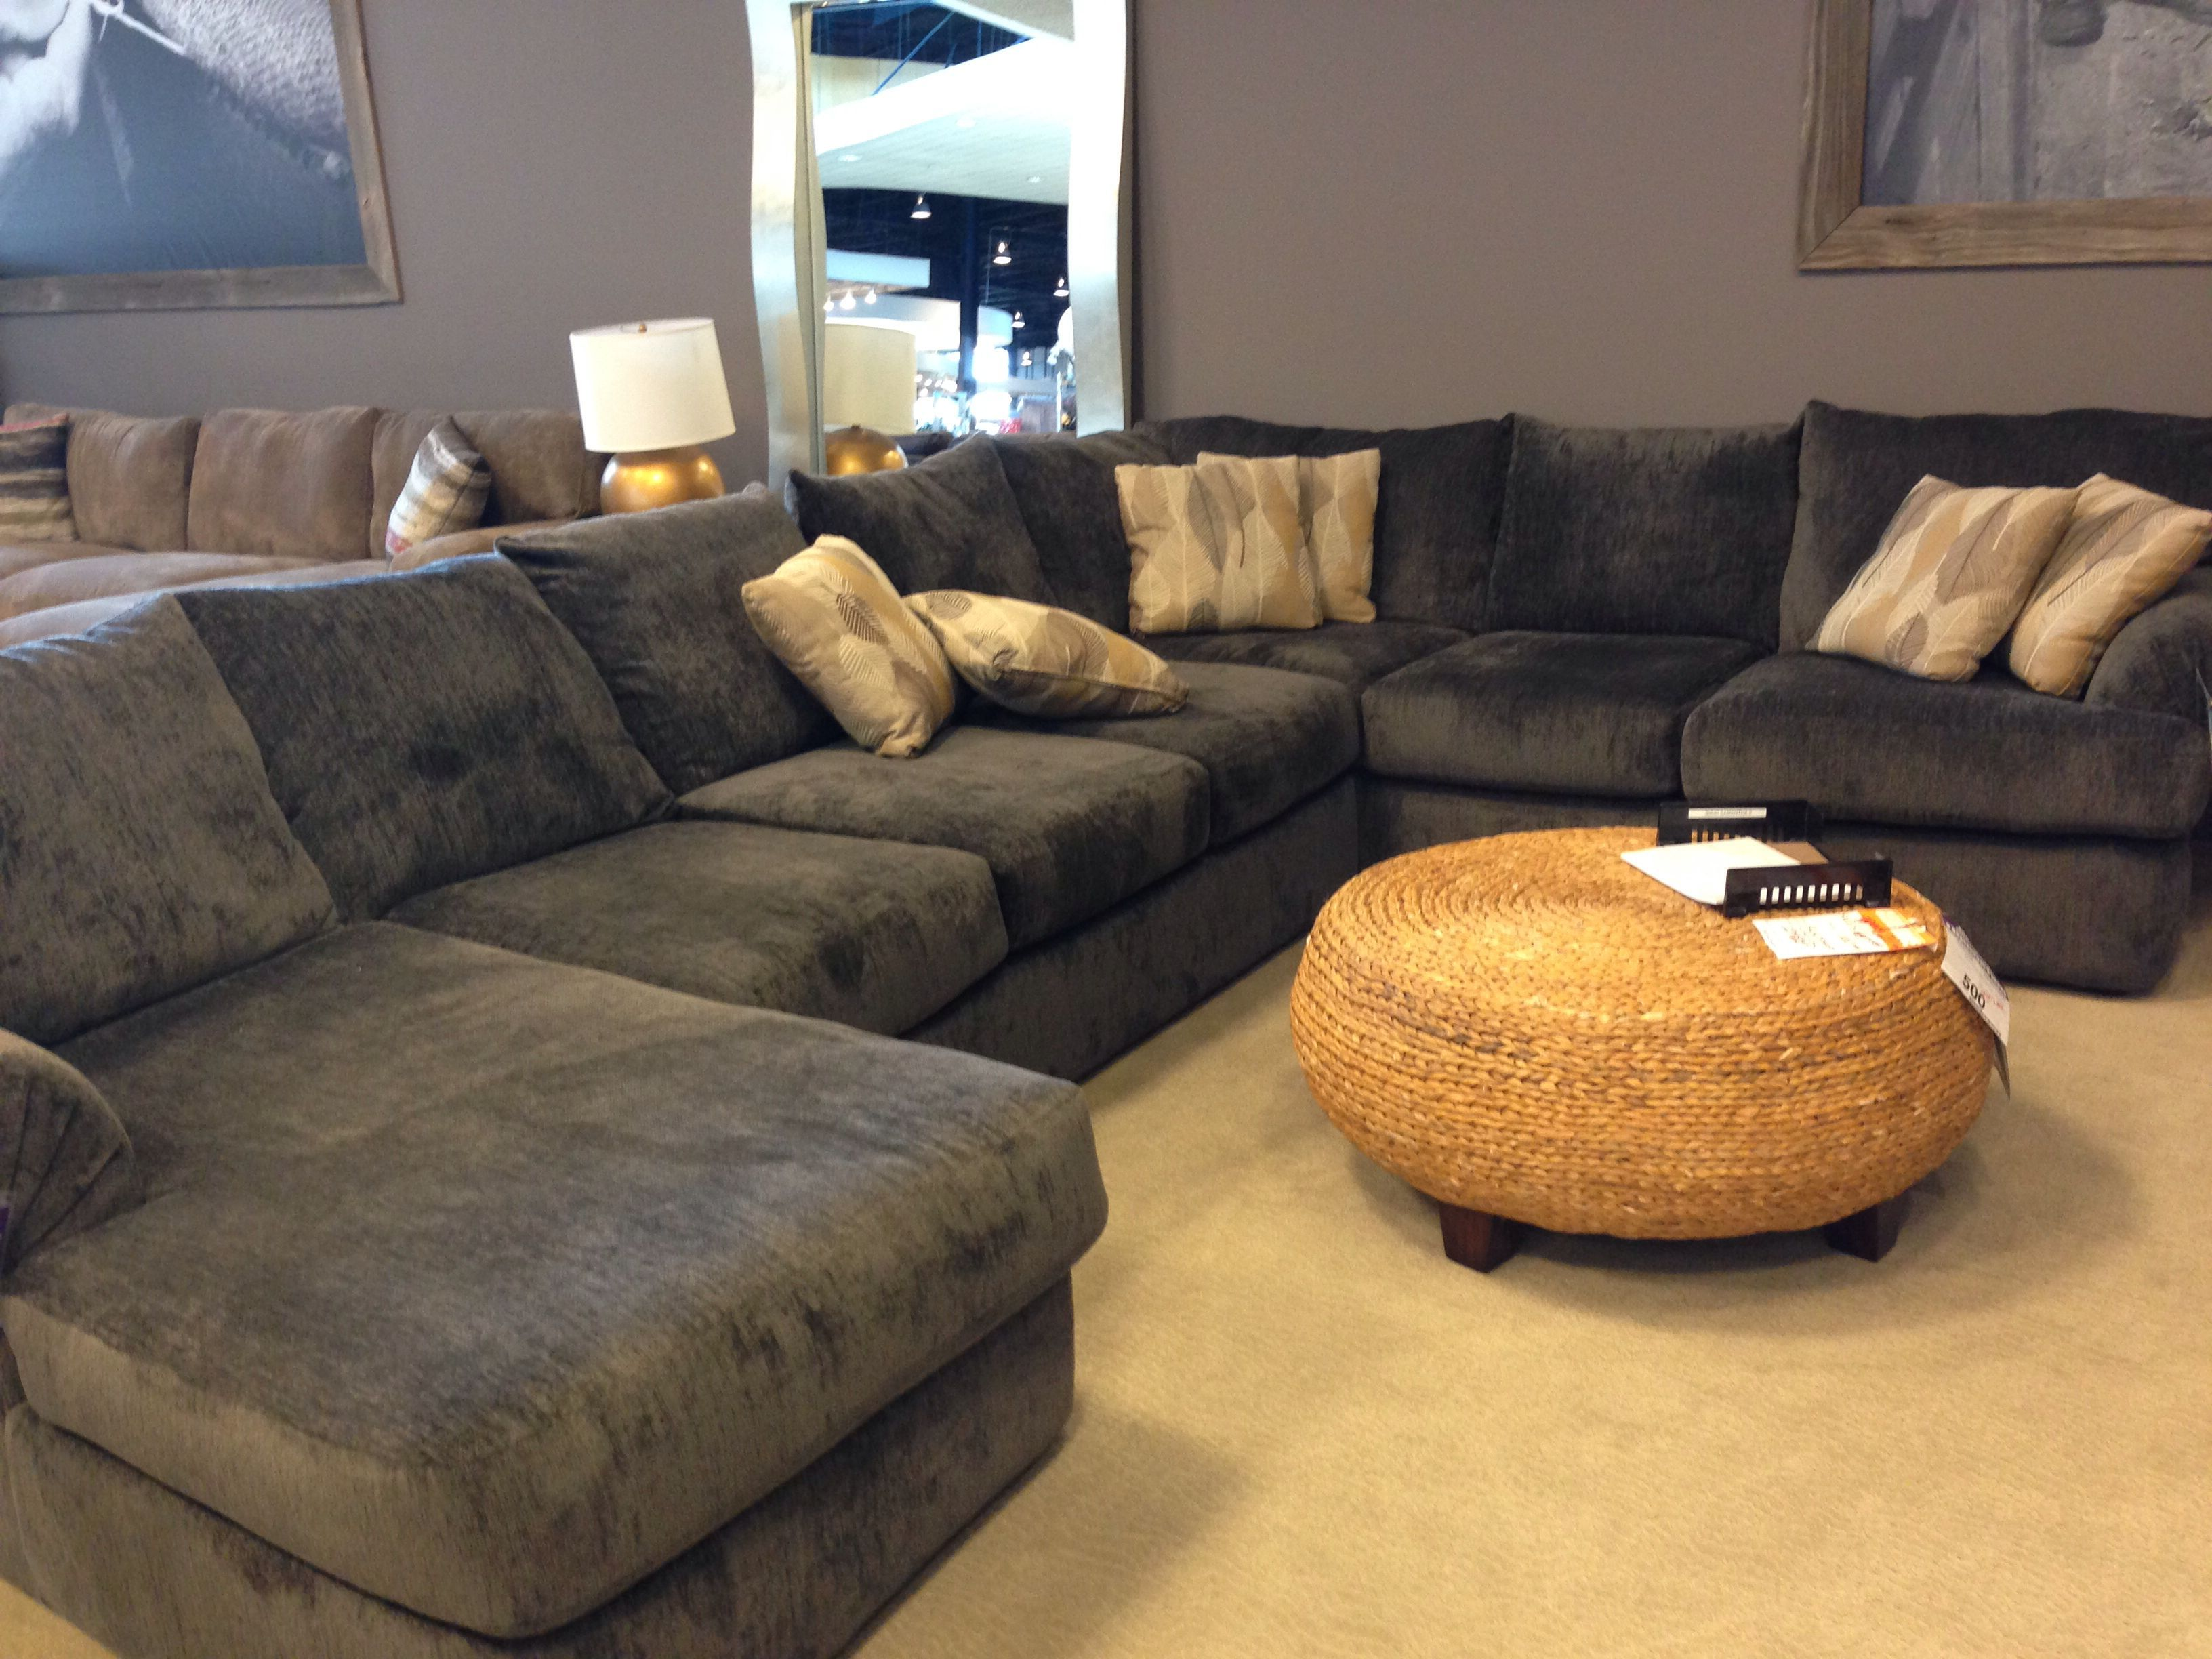 Big Couch in 10  Big couch, Living room design decor, Diy